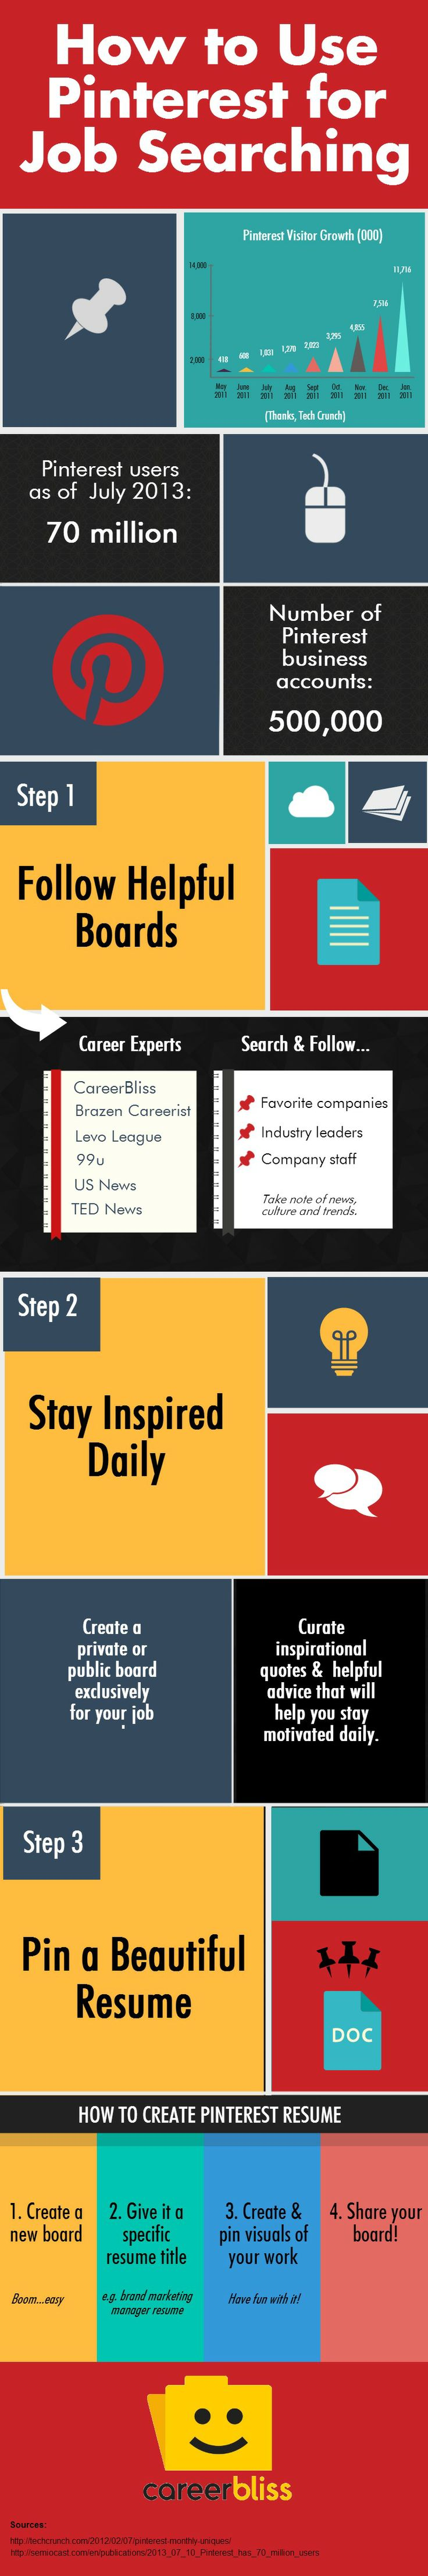 how to use pinterest for job searching infographic job hunting tipsprofessional - Career Advice Career Tips From Professional Experts